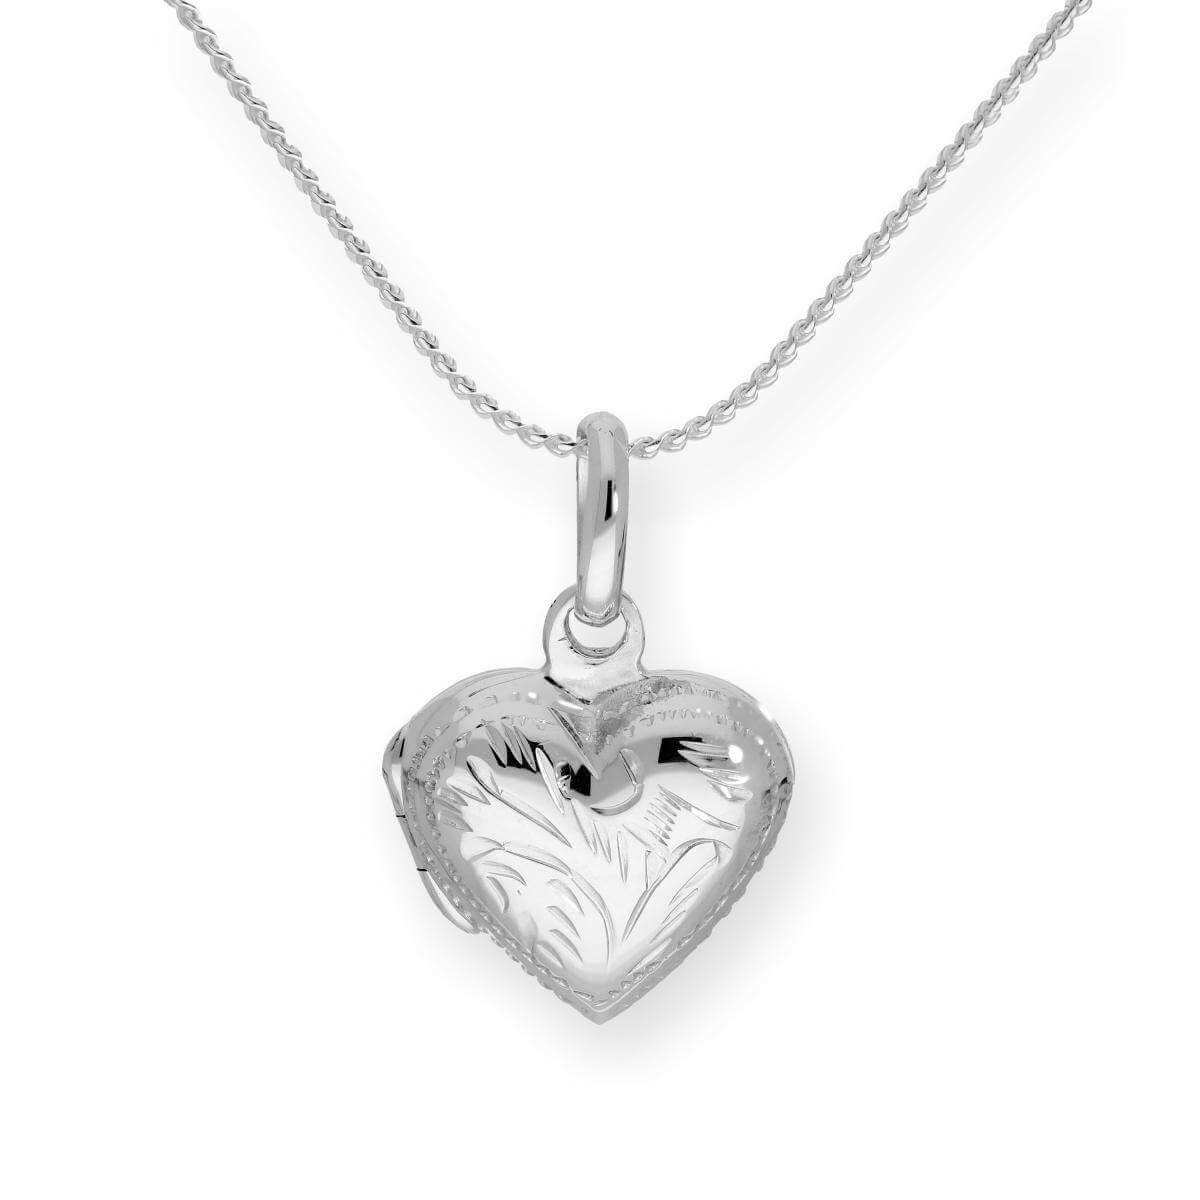 Sterling Silver Puffed Heart Engraved Locket on Chain 16 - 22 Inches